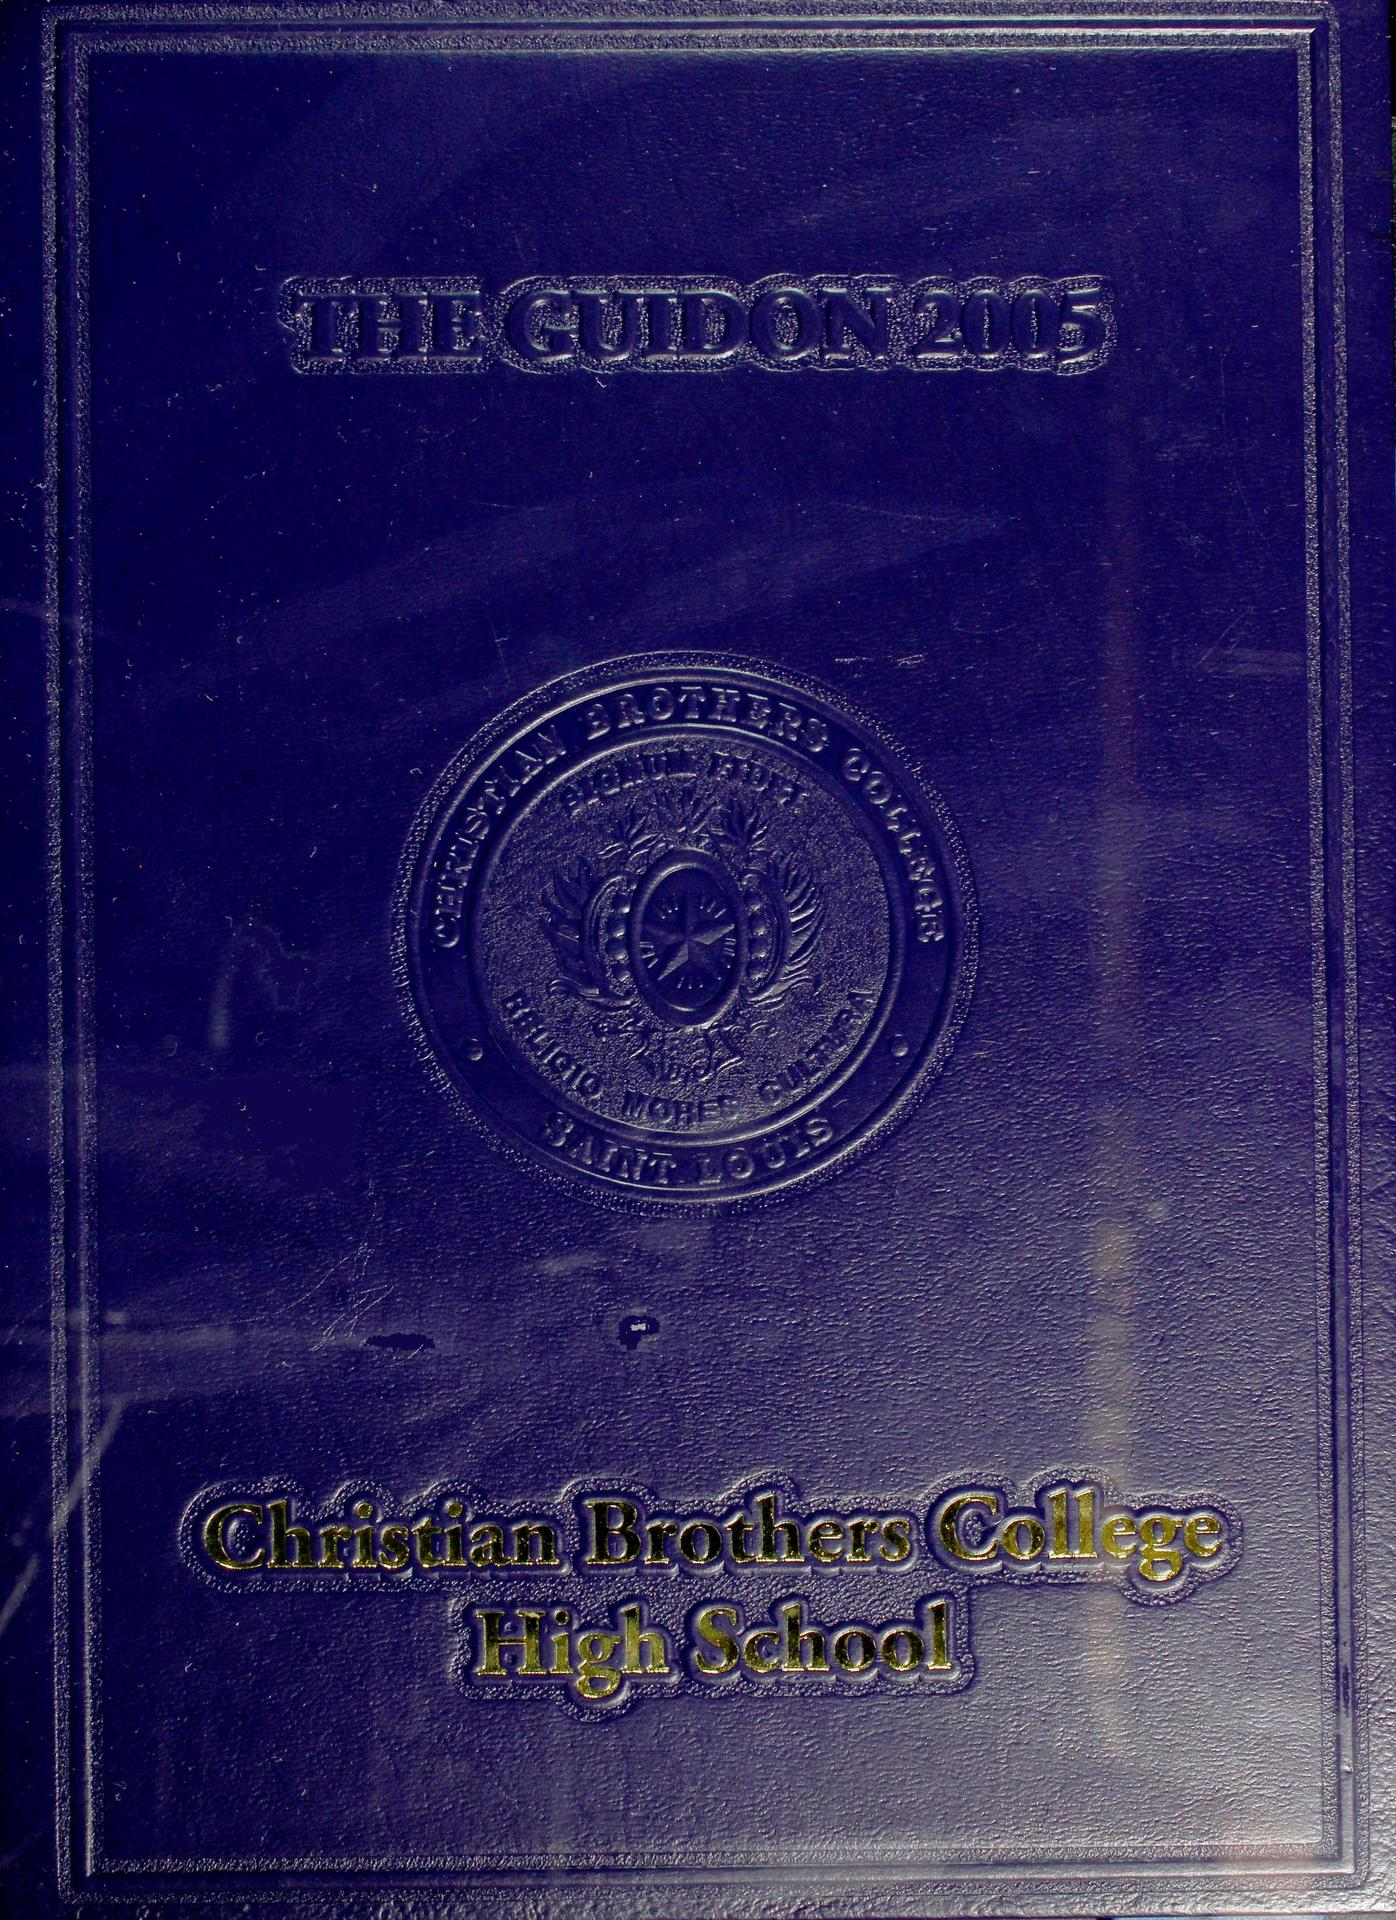 2005 CBC Yearbook